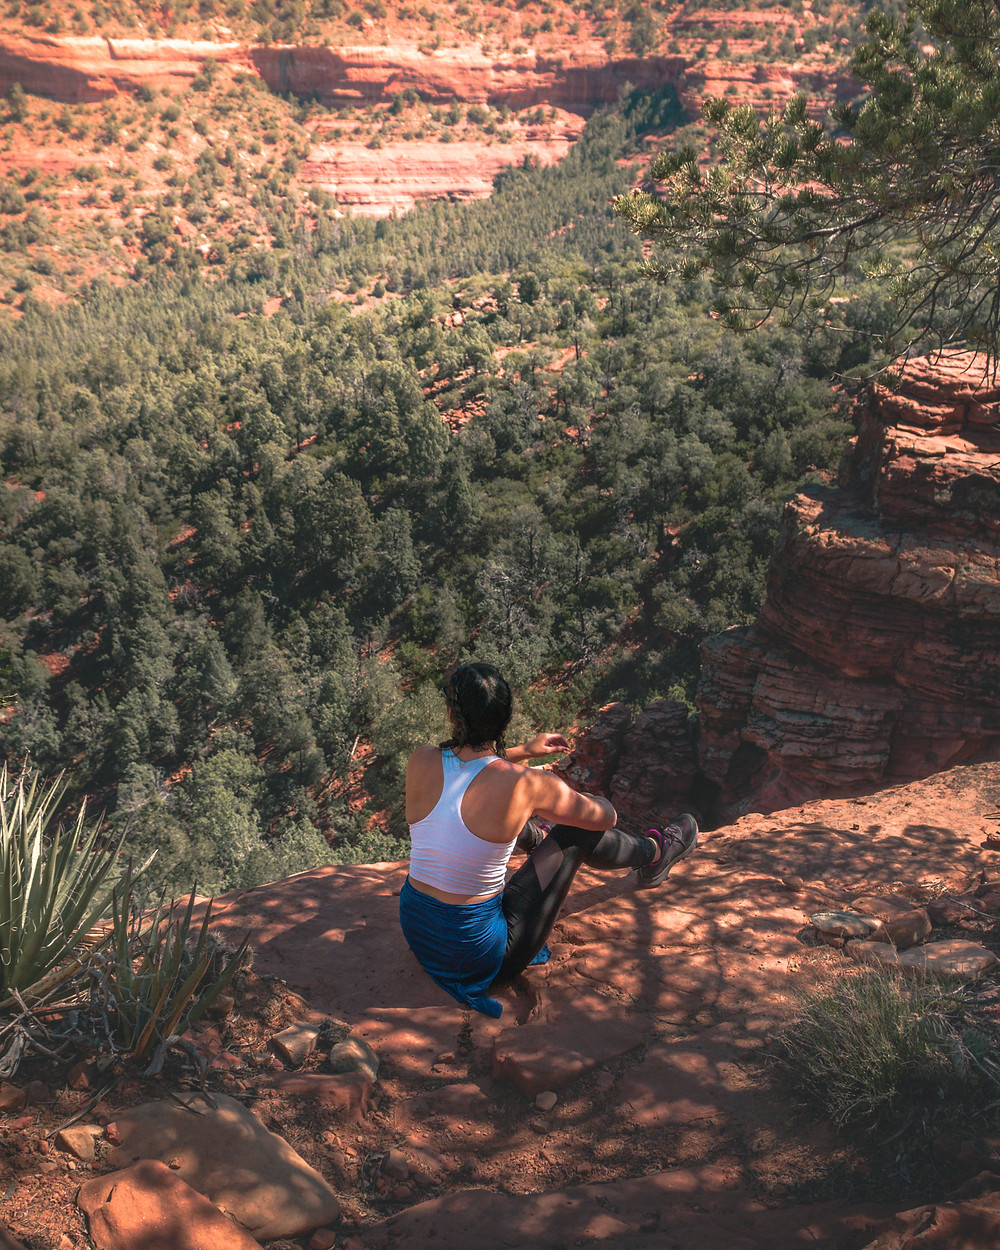 Hiker sitting on the ledge of a trail in sedona